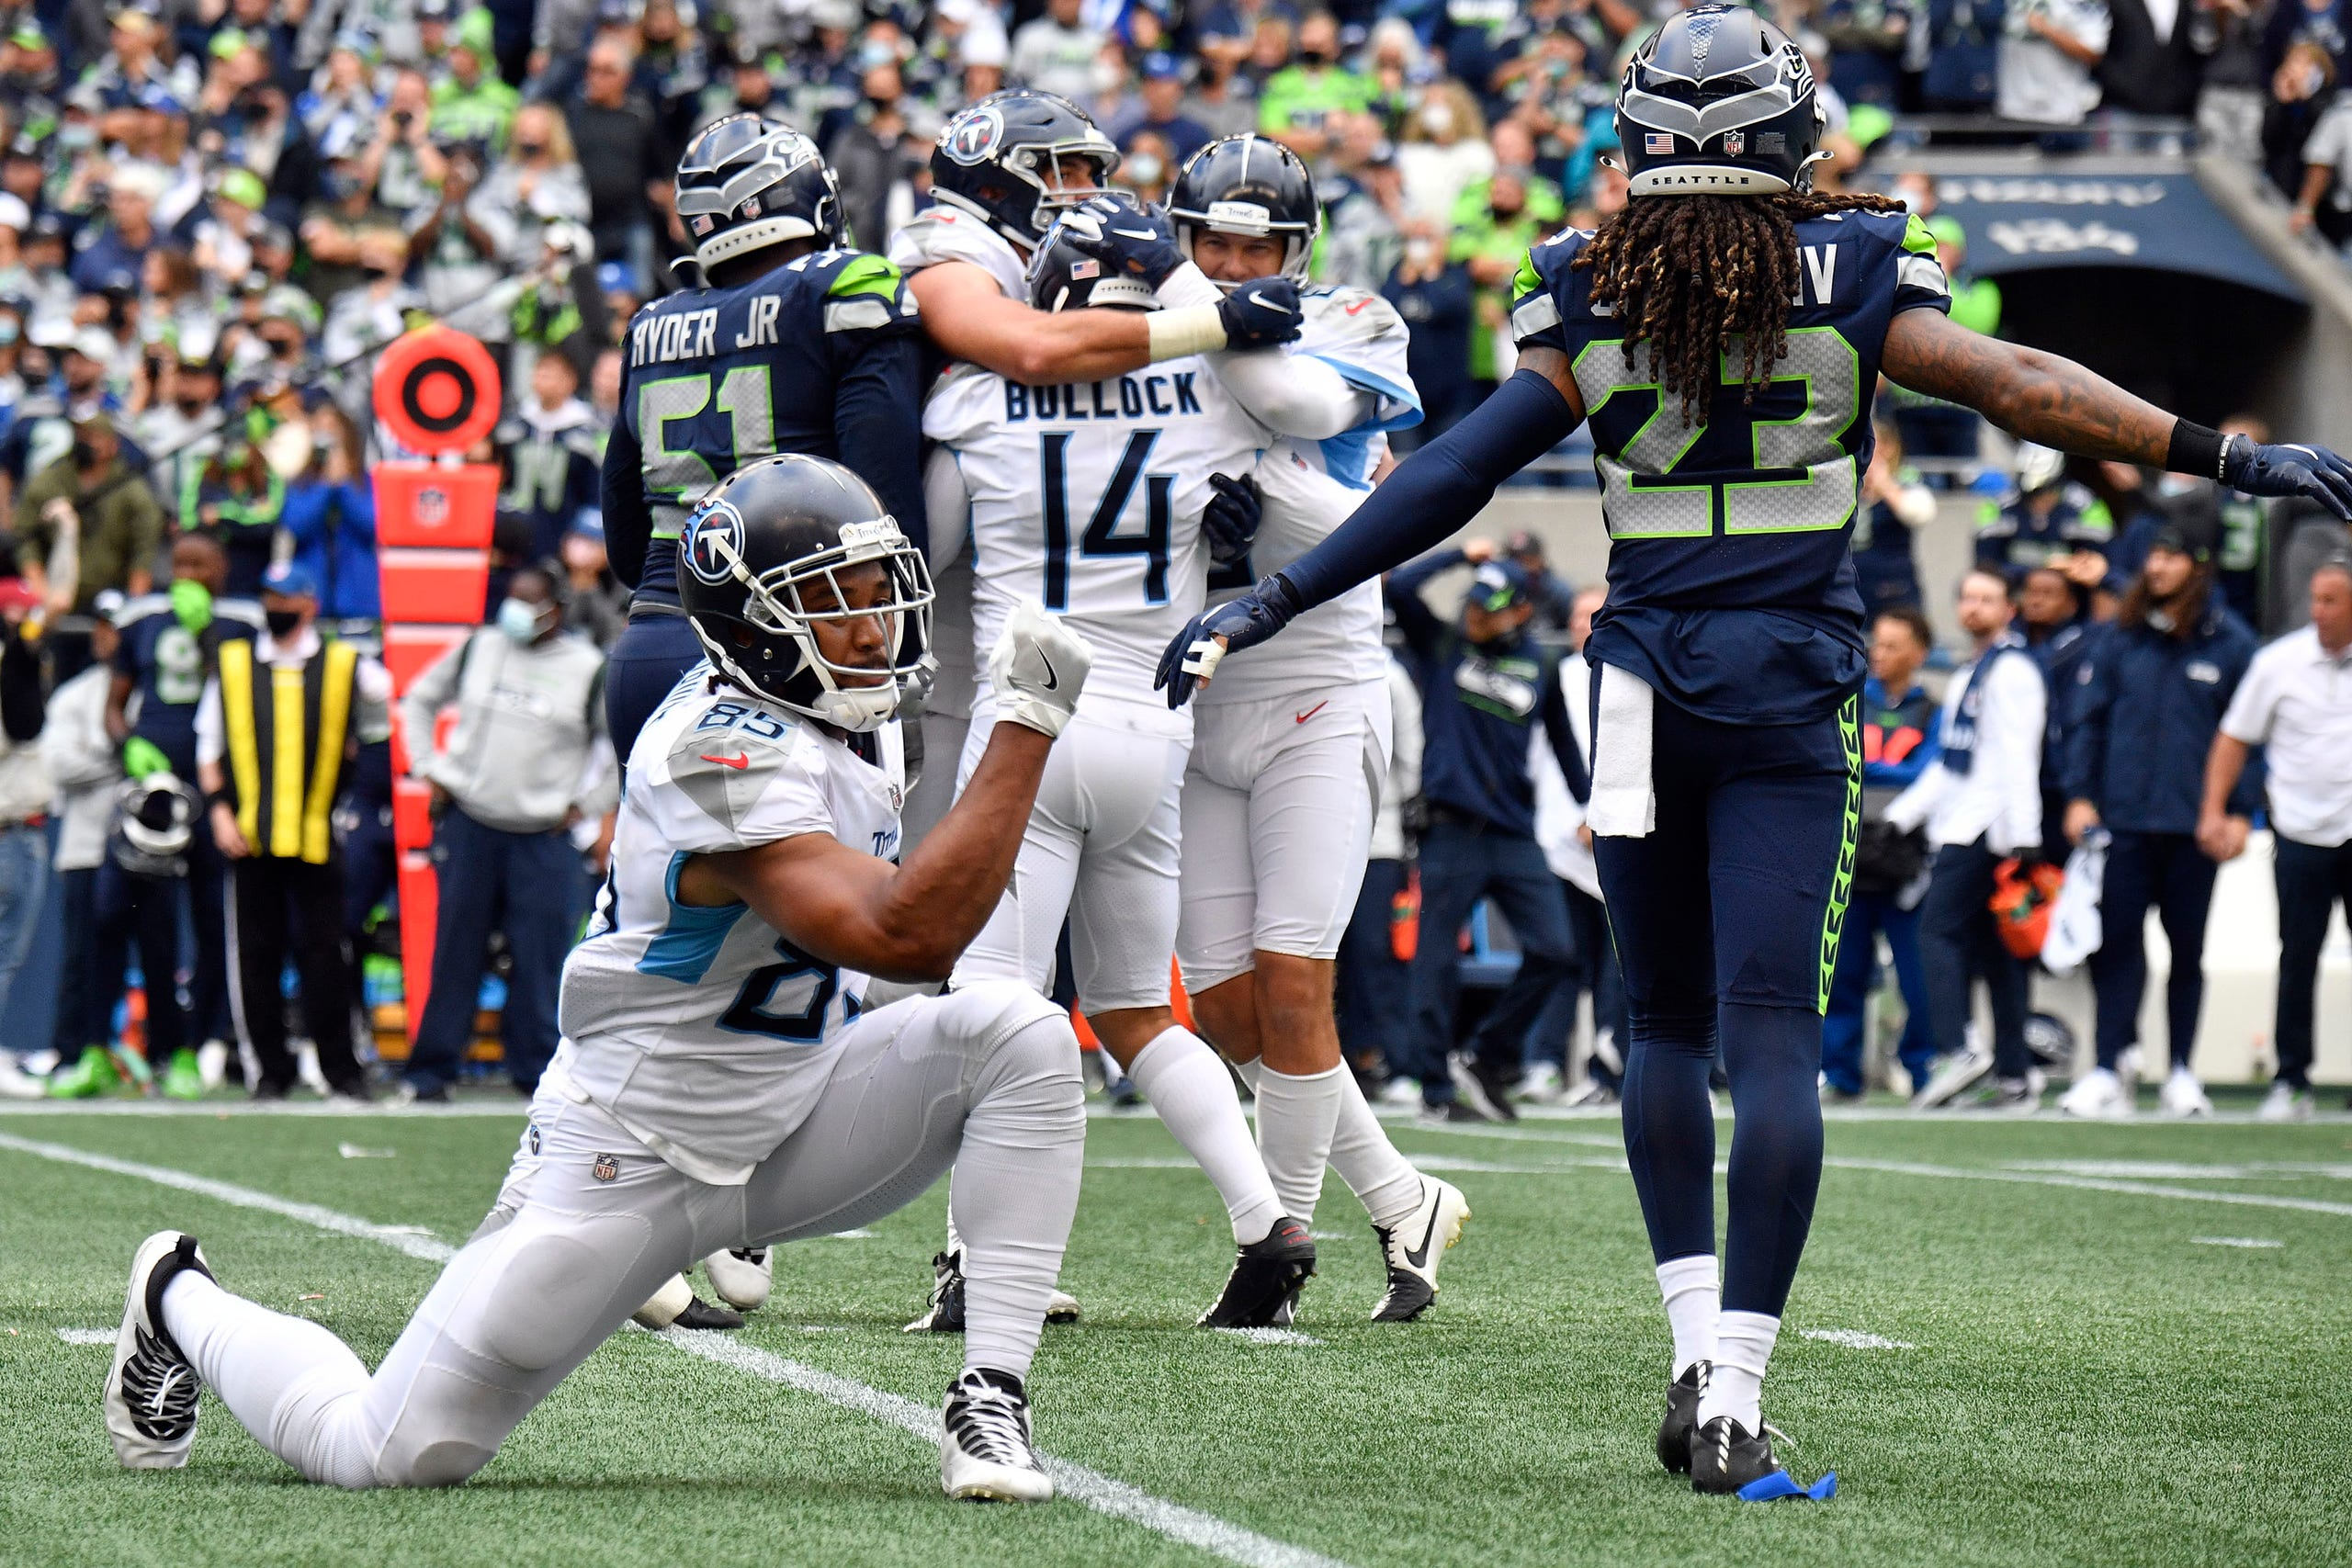 Tennessee Titans tight end MyCole Pruitt (85) celebrates  kicker Randy Bullock's (14) kick that won the game in overtime at Lumen Field Sunday, Sept. 19, 2021 in Seattle, Wash.